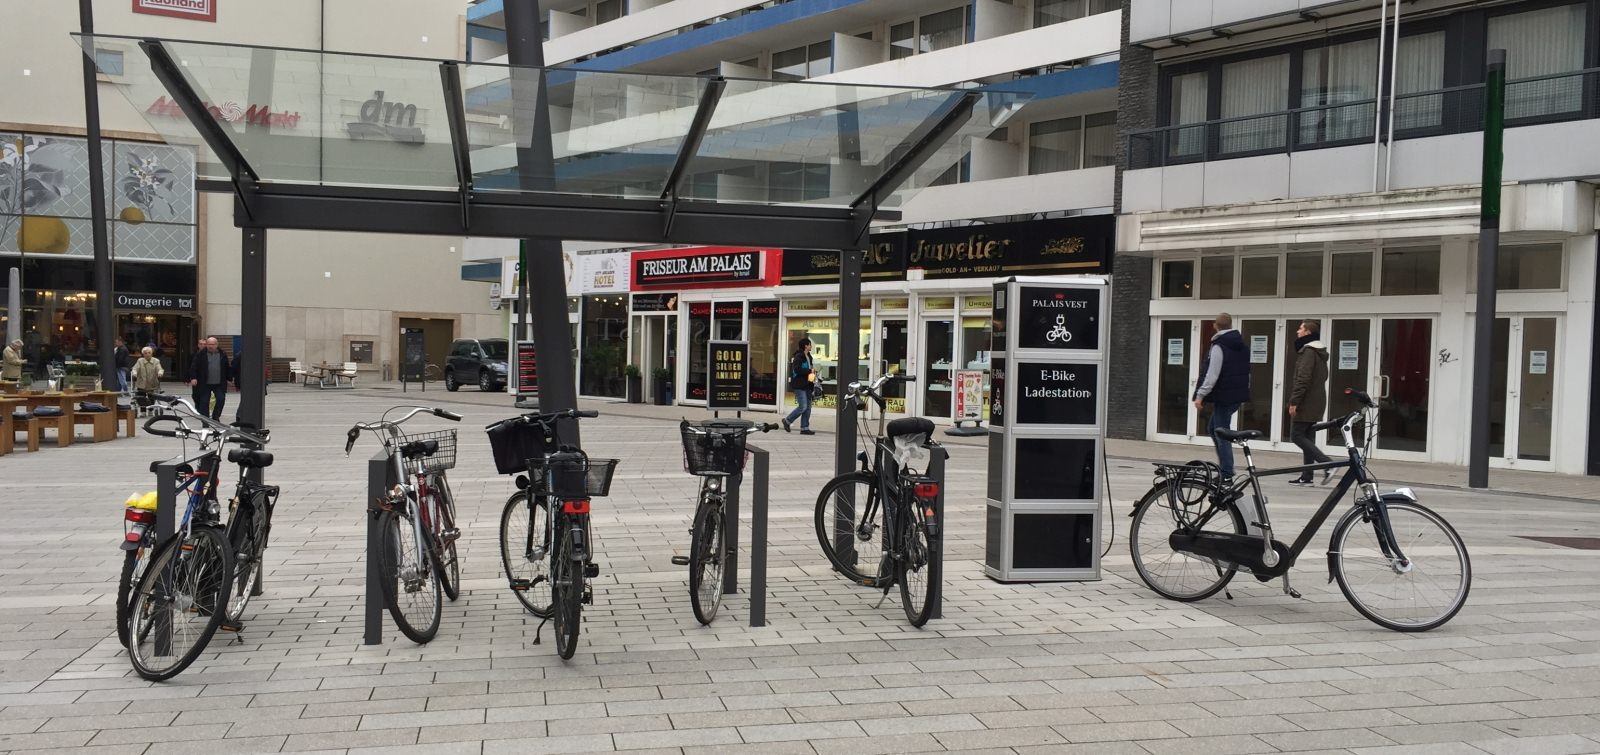 Radabstellanlage Ladeschrank Pedelec E-Bike E-Rad Recklinghausen Palais Vest